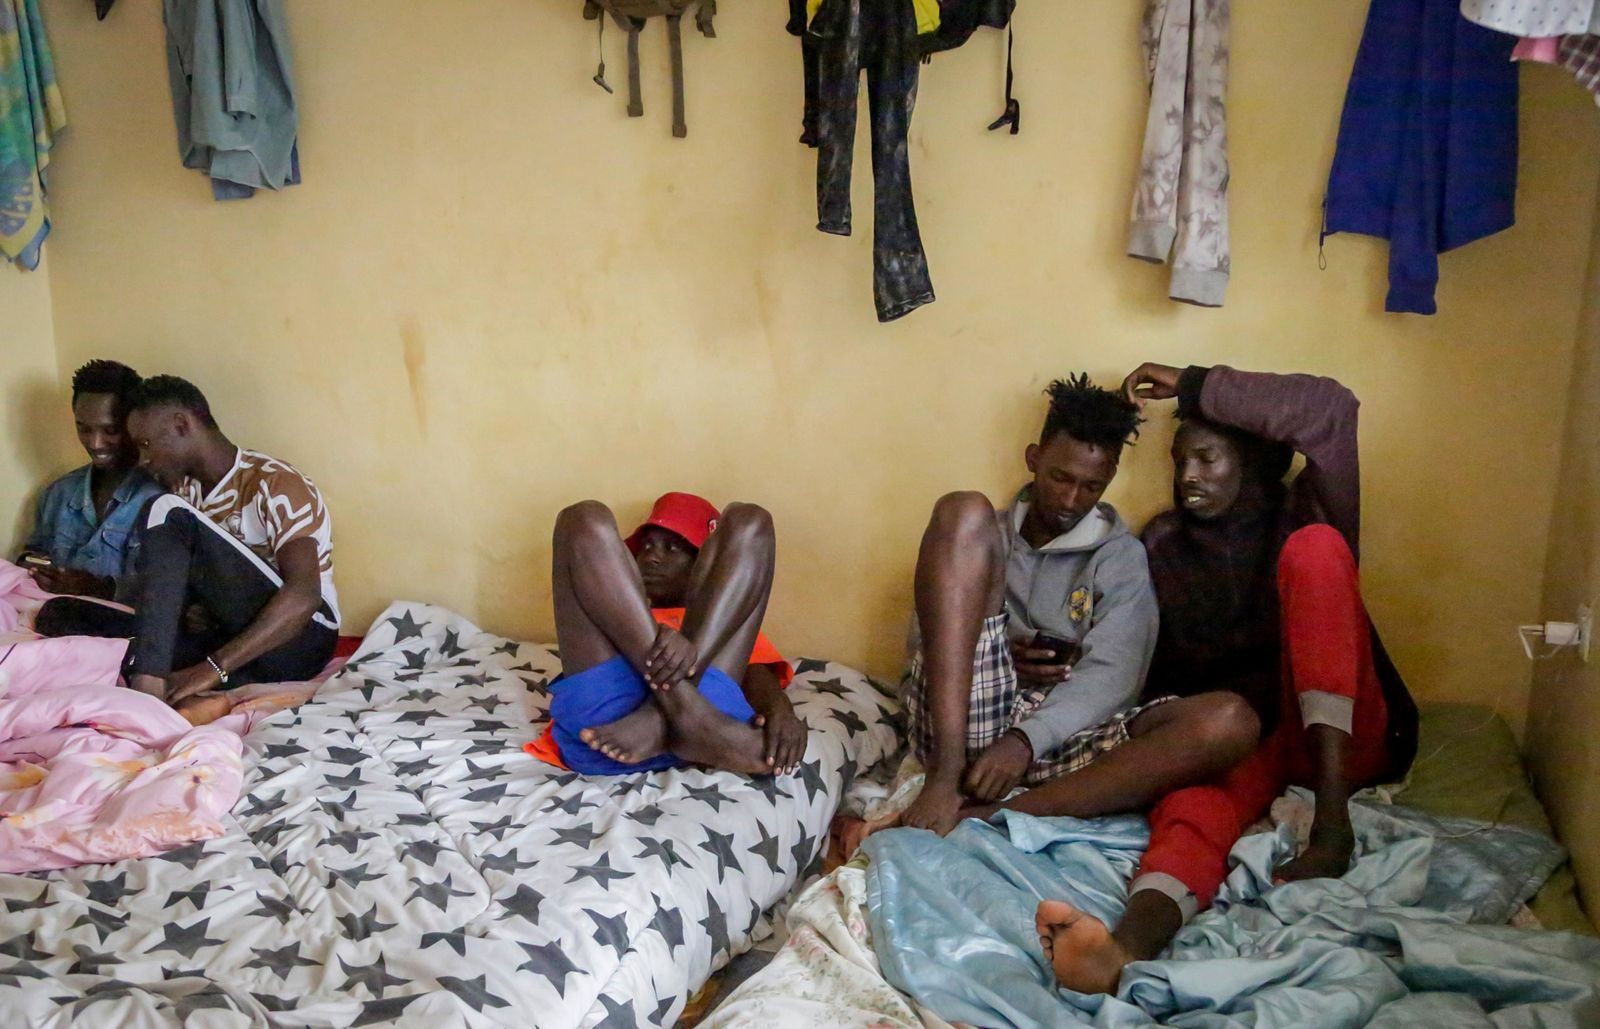 In this photo taken Tuesday, May 28, 2019, LGBT refugees from Burundi, Rwanda and Congo lie on a mattress in one of the rooms they share in the house where they take shelter in a low-income neighborhood of the capital Nairobi, Kenya. (AP Photo/Khalil Senosi)